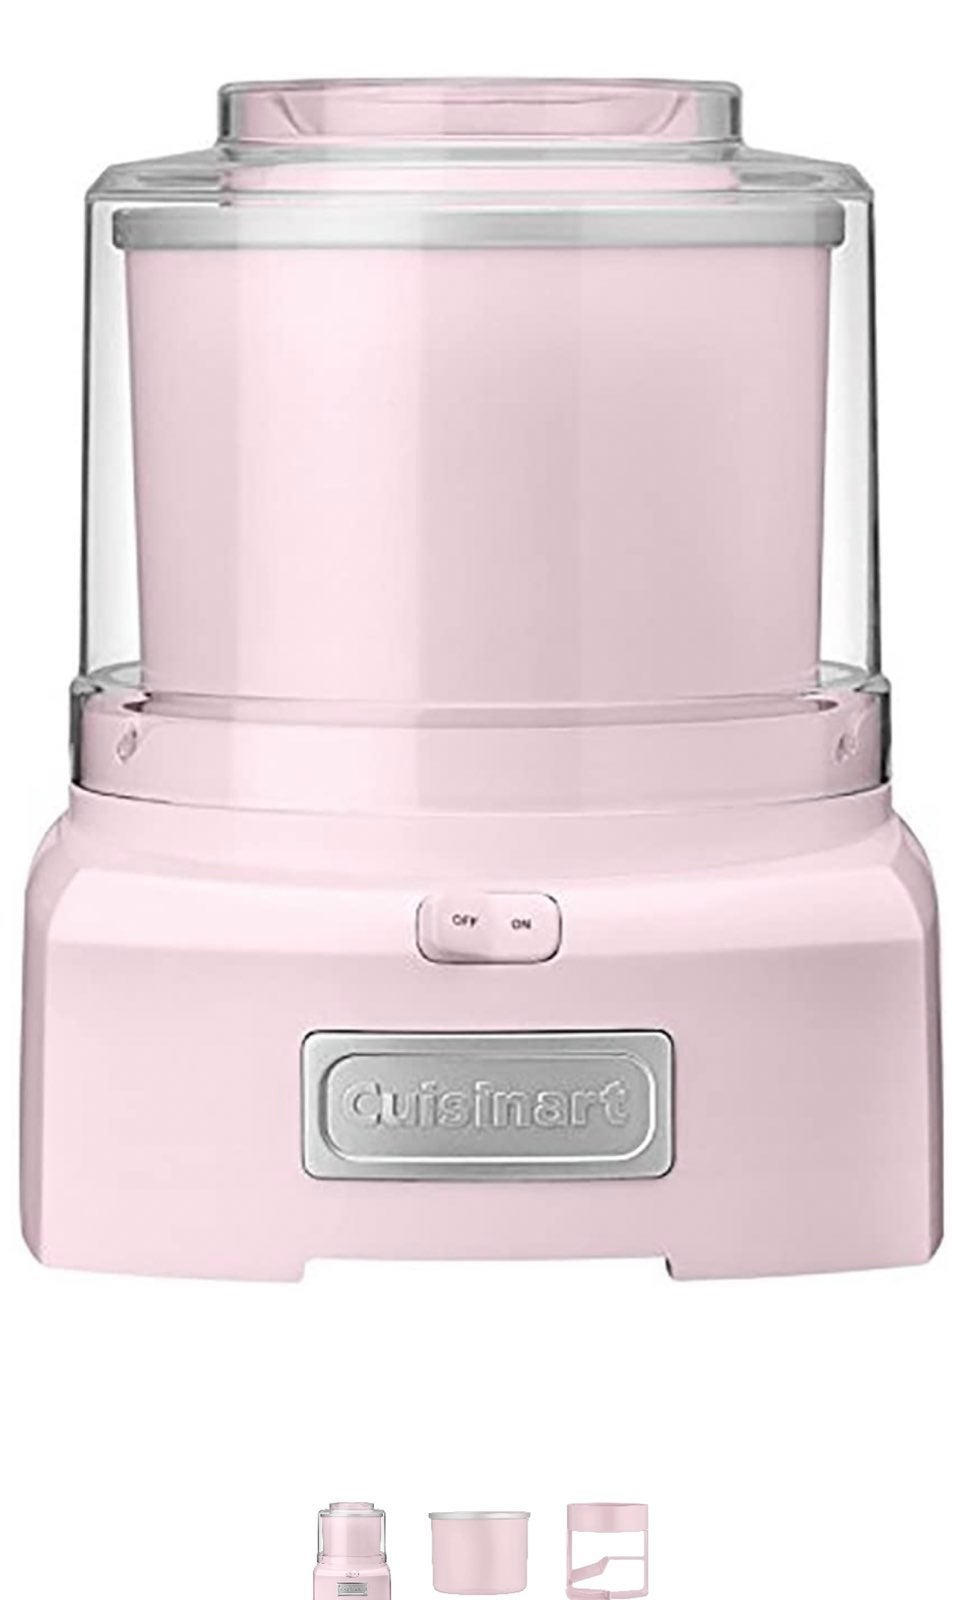 cuisinart ice cream maker machine